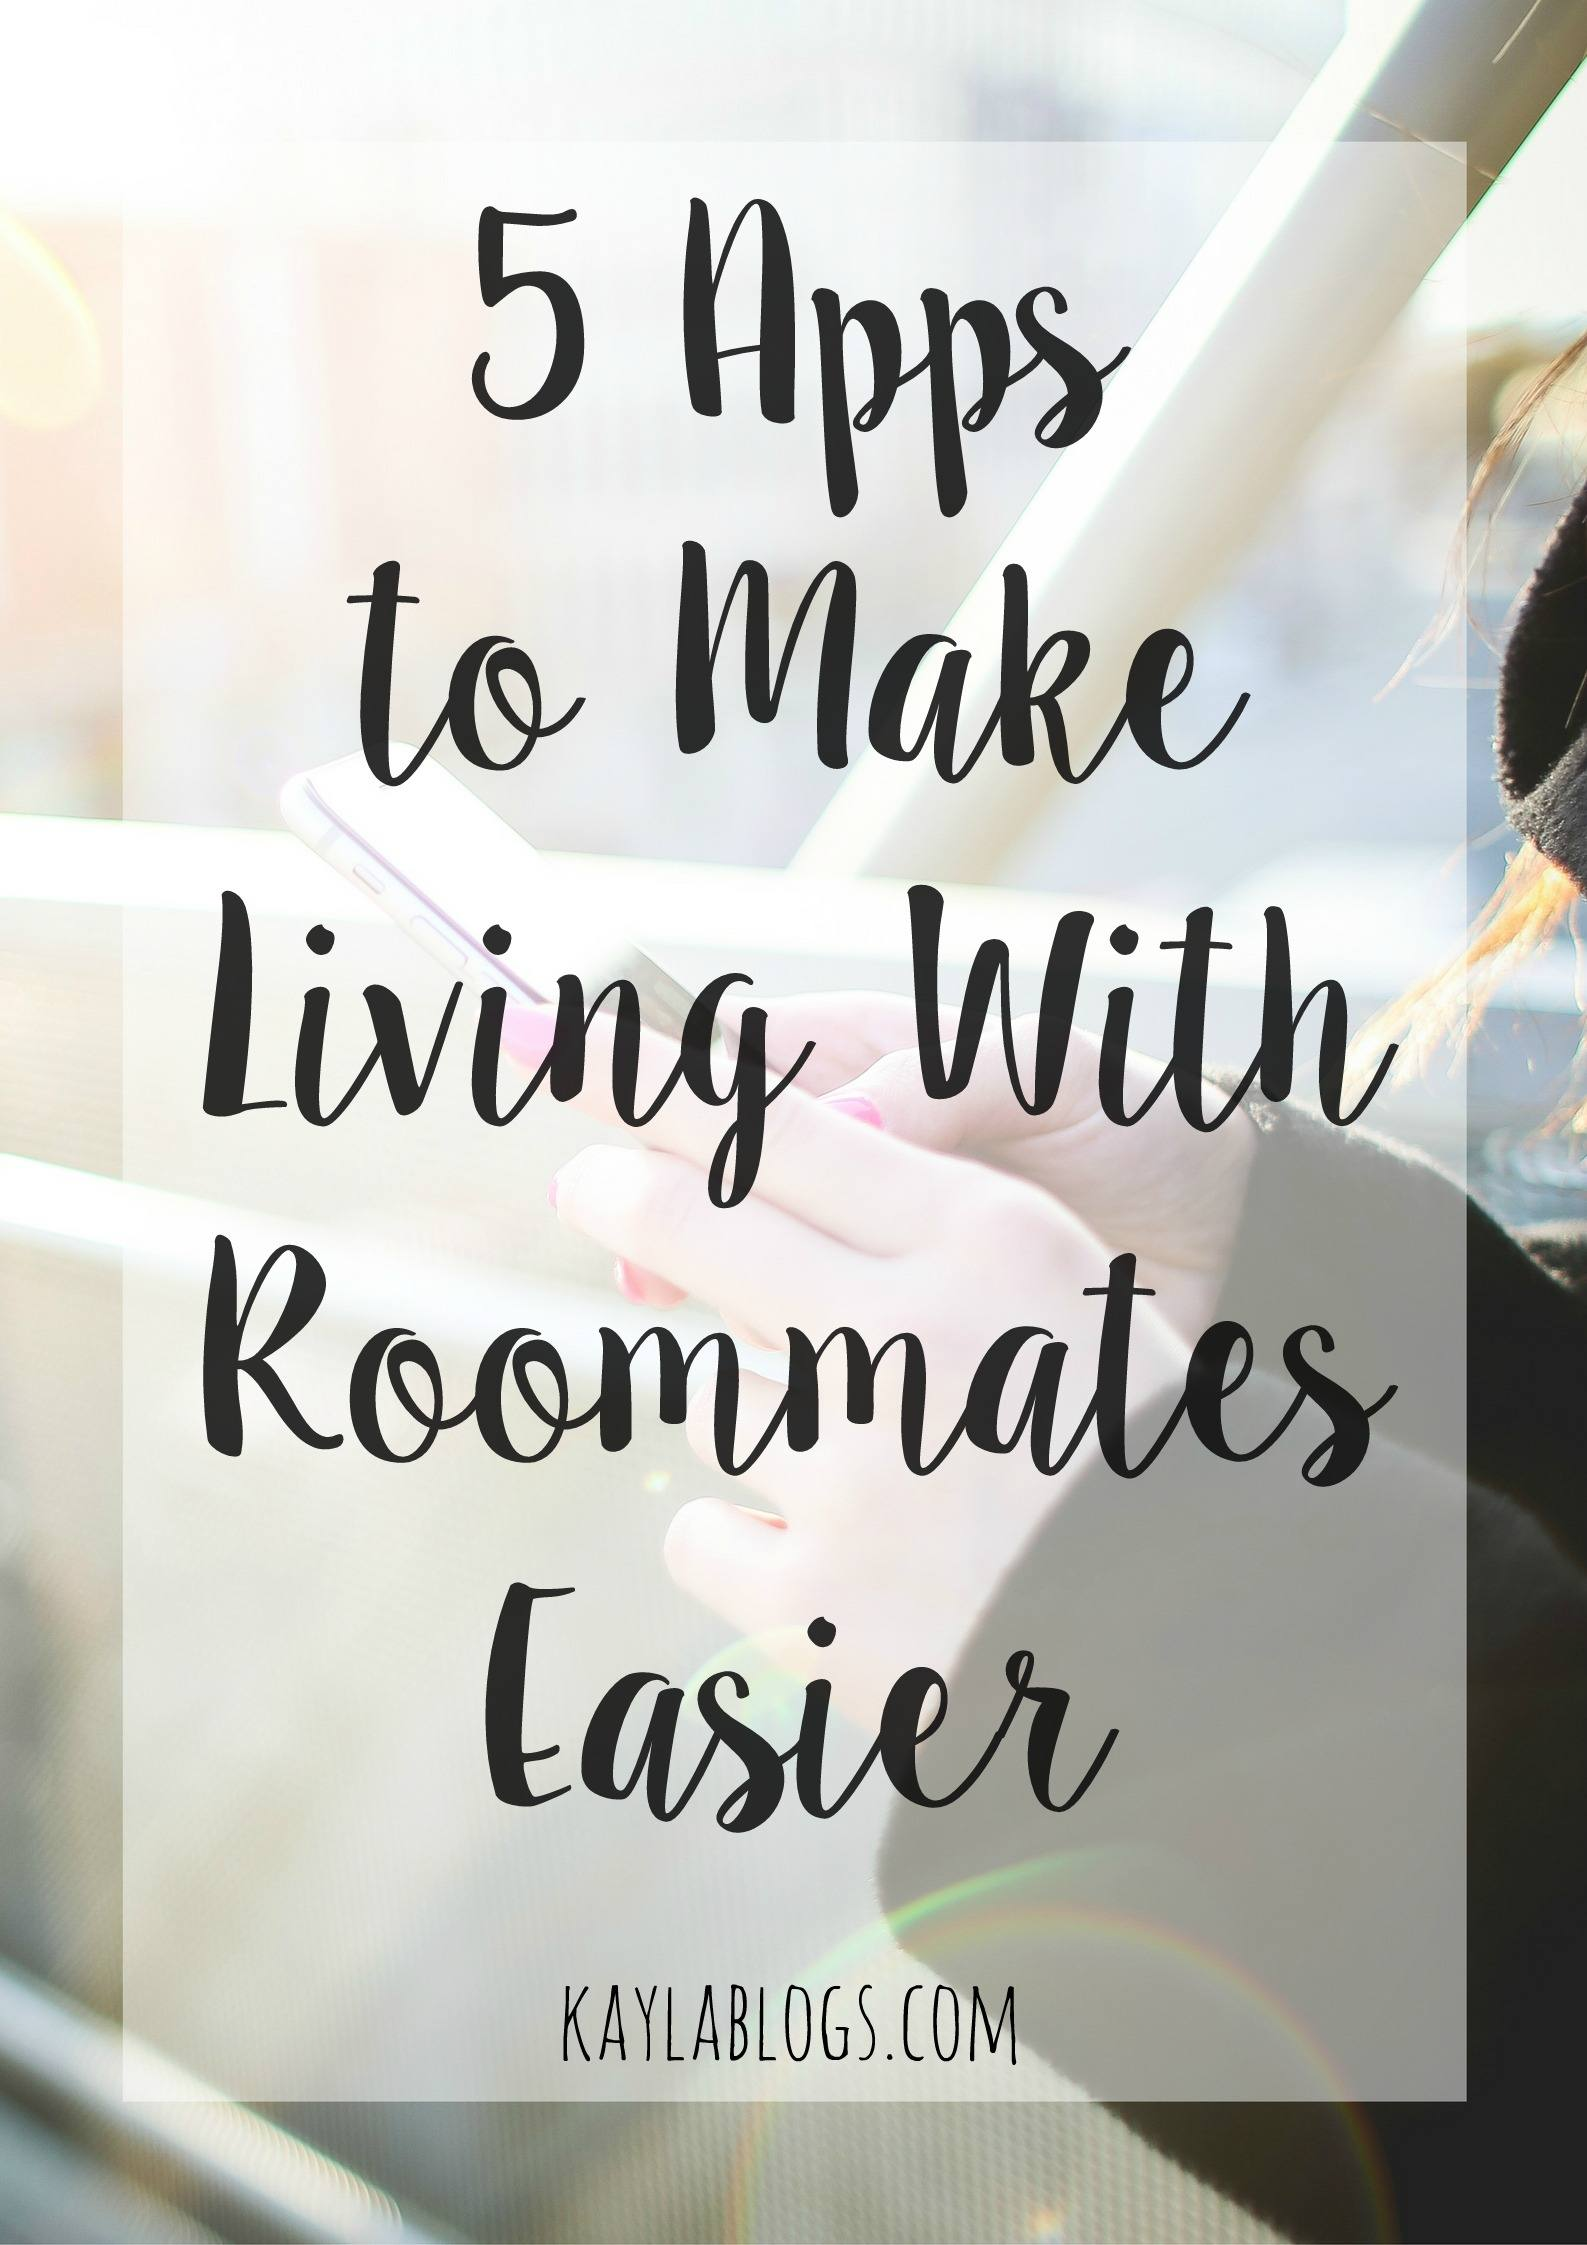 5 Apps To Make Living With Roommates Easier